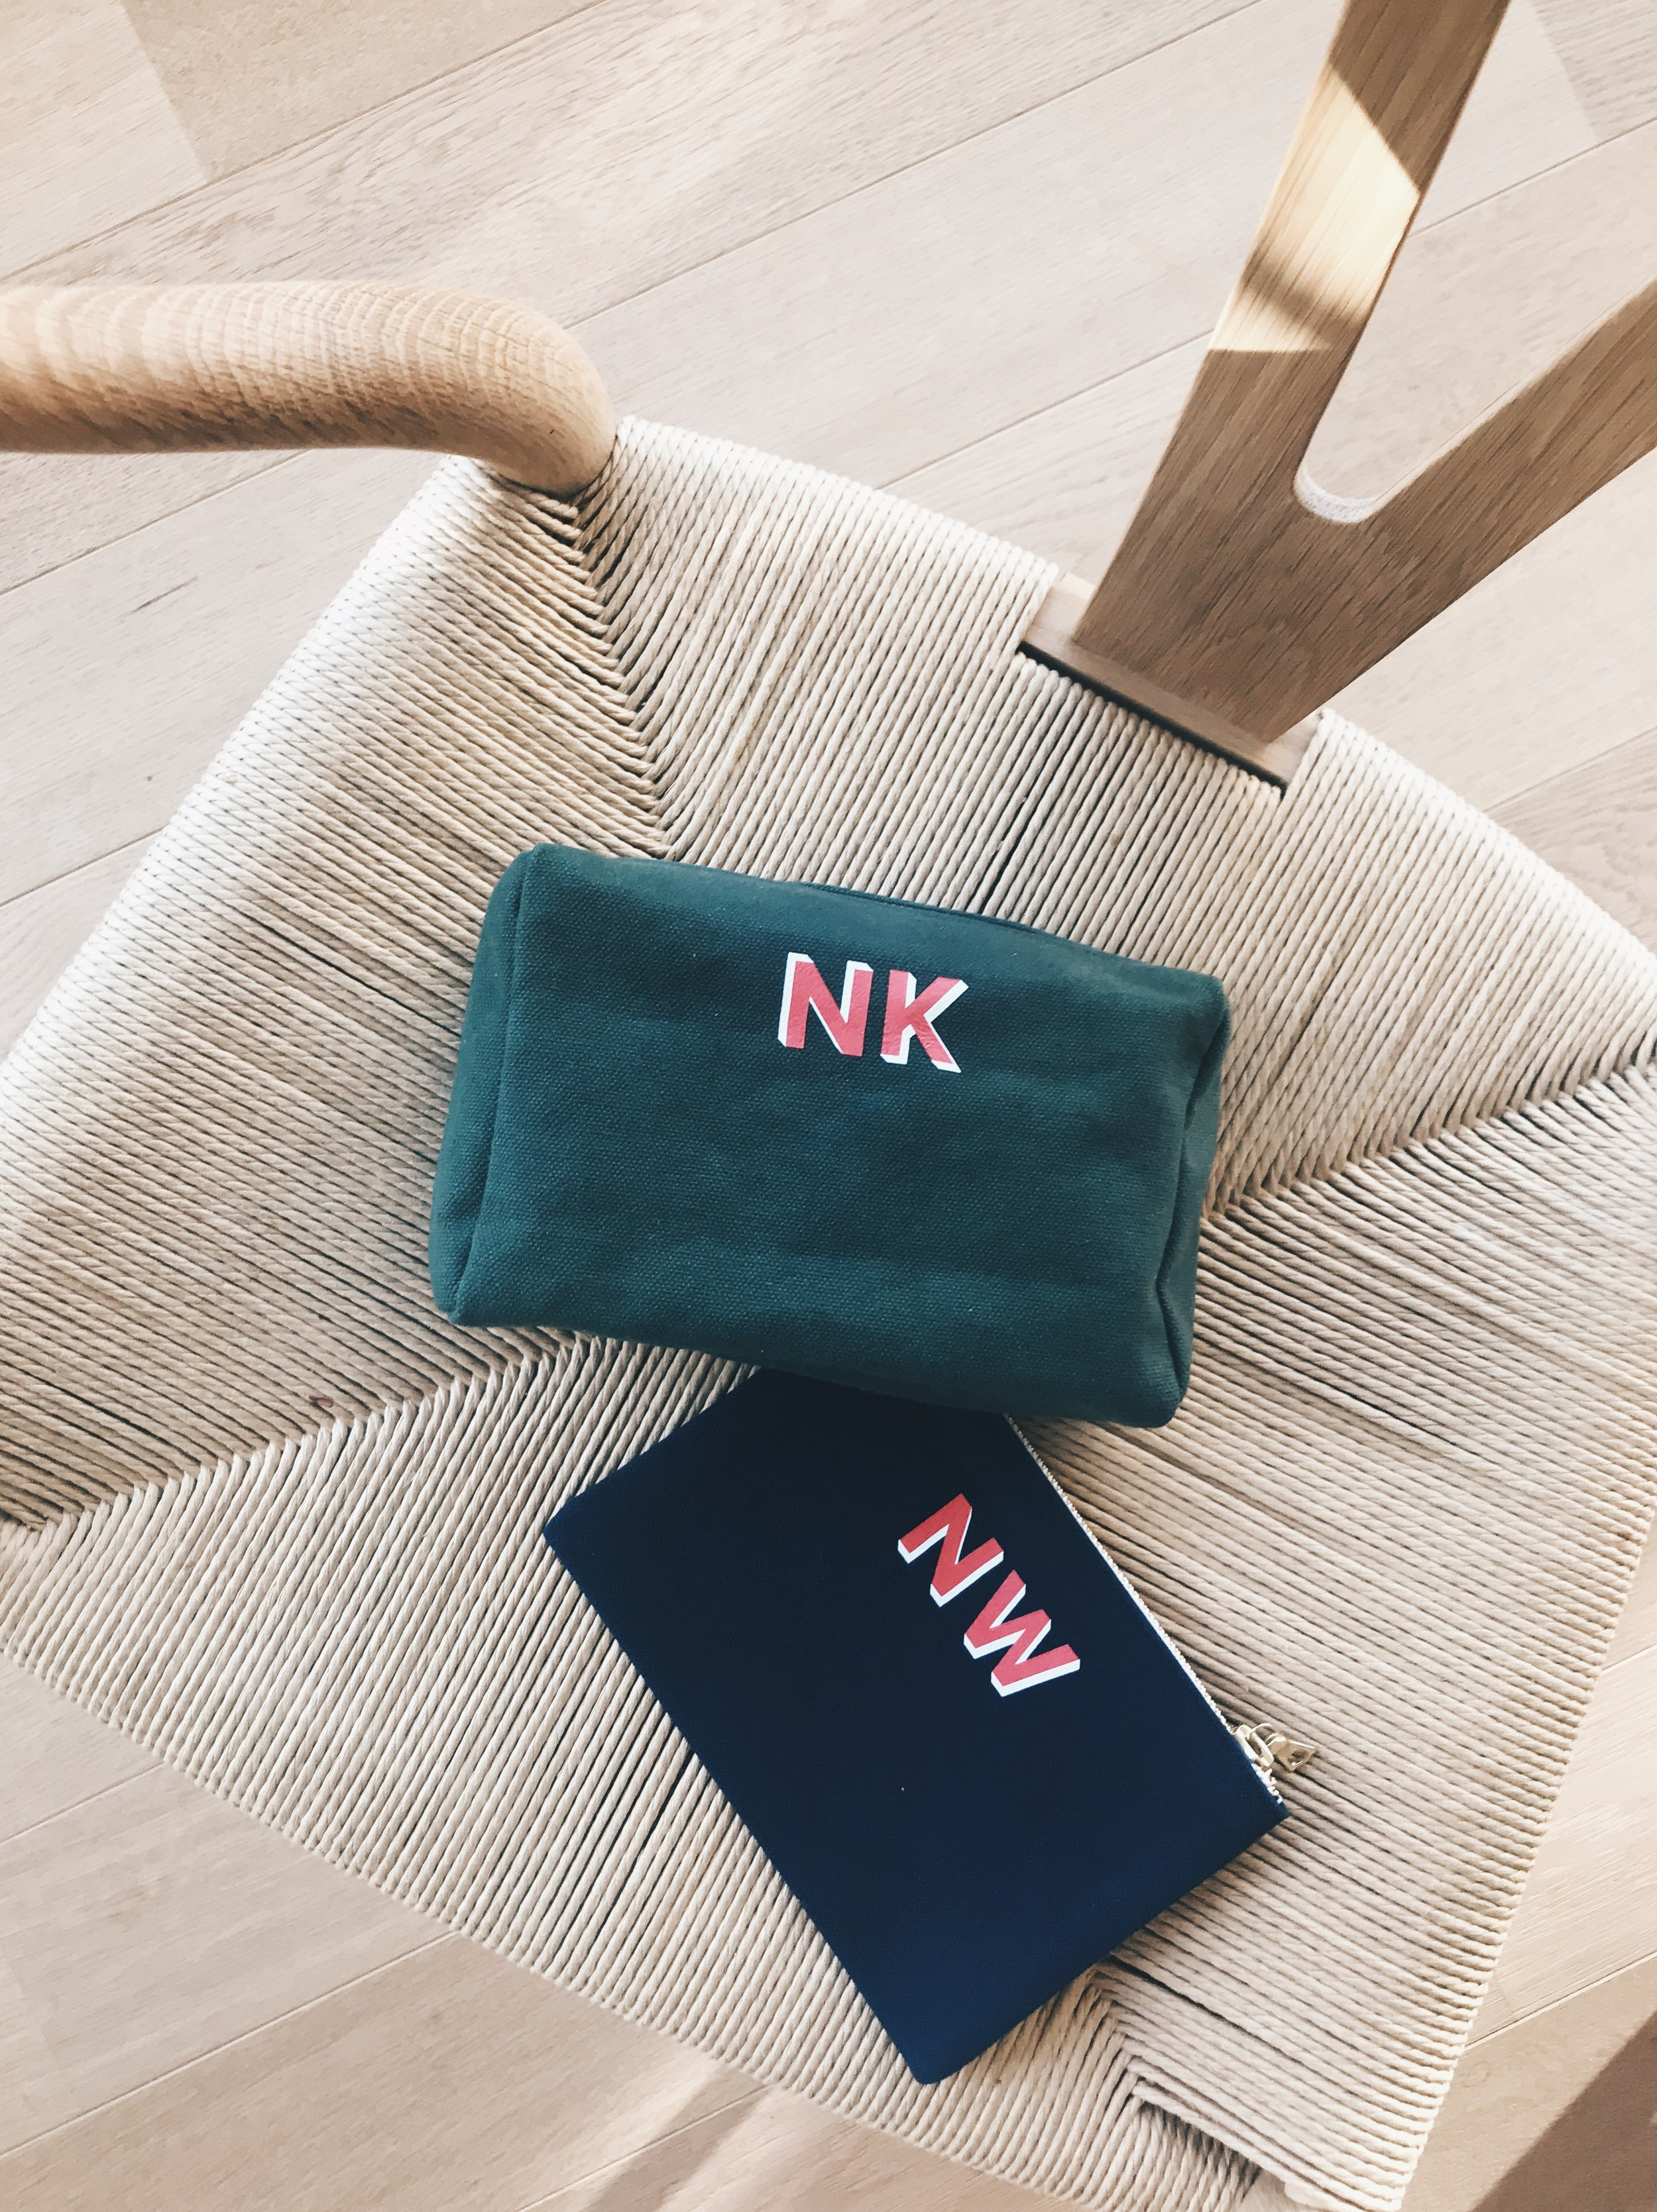 Canvas, with love. - Our Canvas Bags are crafted in Switzerland and will be printed with beautiful letters in red and white. Different bag shapes, colors and sizes are available. Click here (for flat pouches) or here (for wash bags) to view more pictures or to order online.